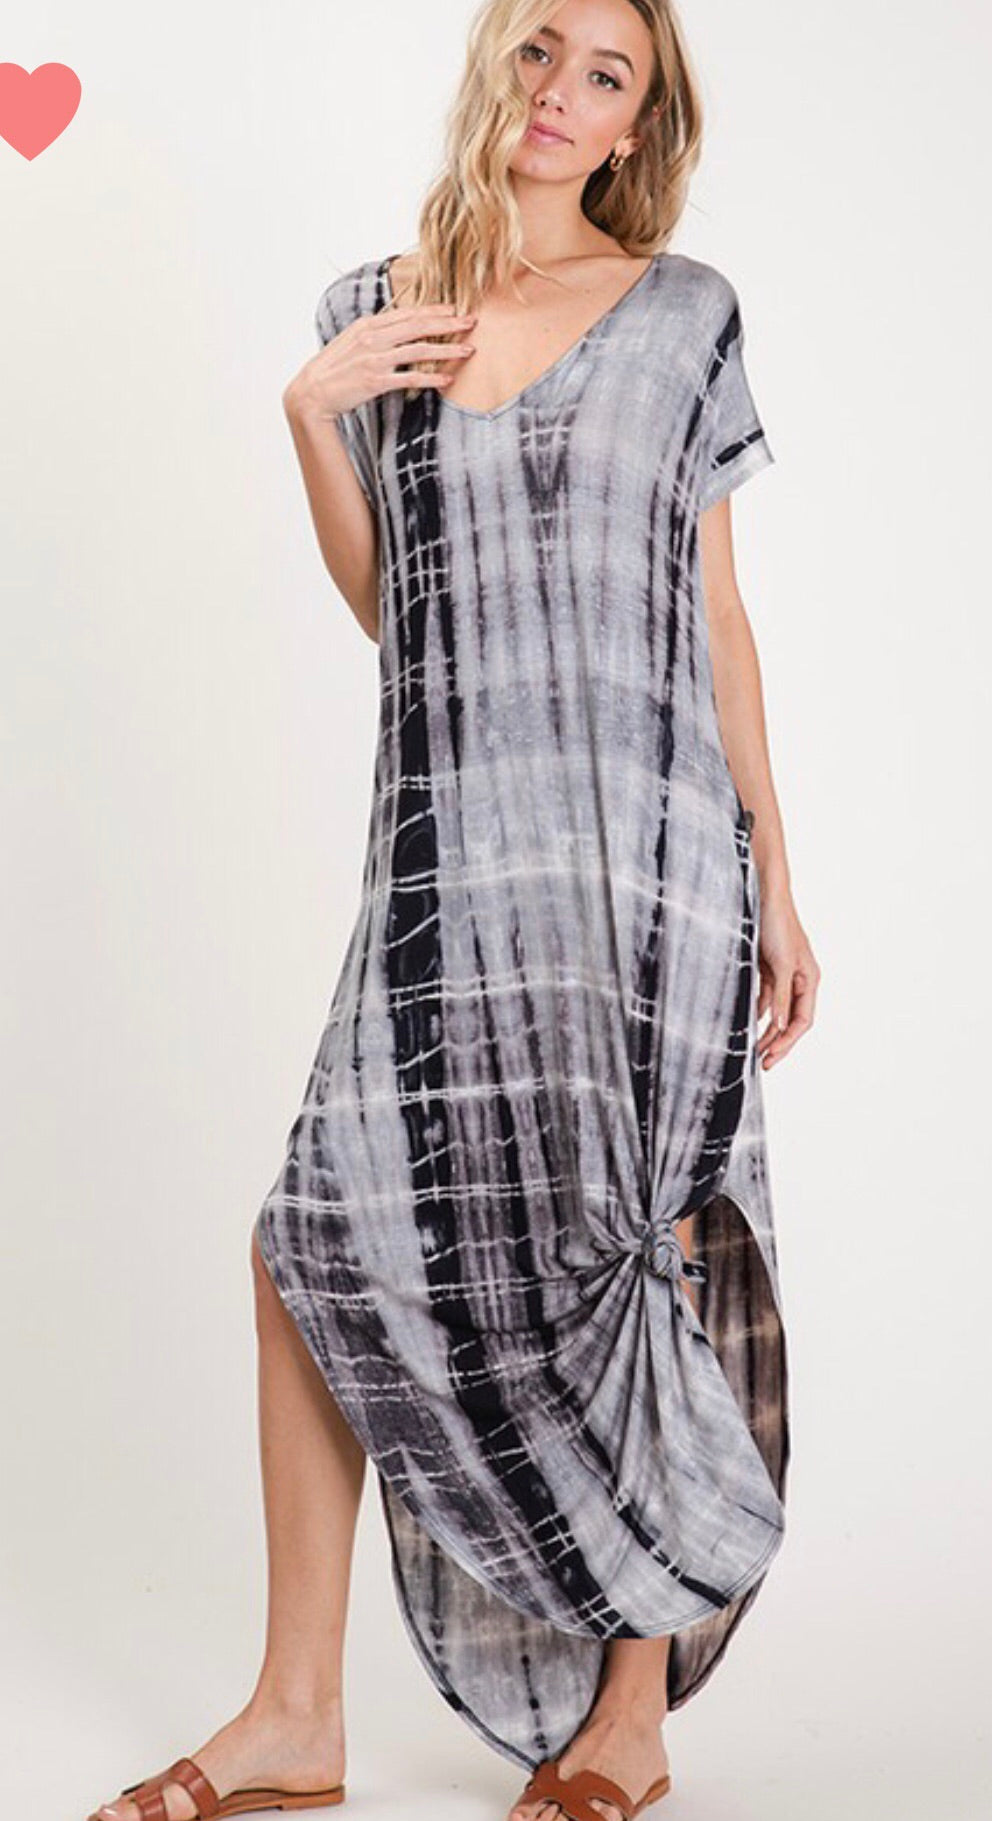 Char Grey Tie Dye Dress